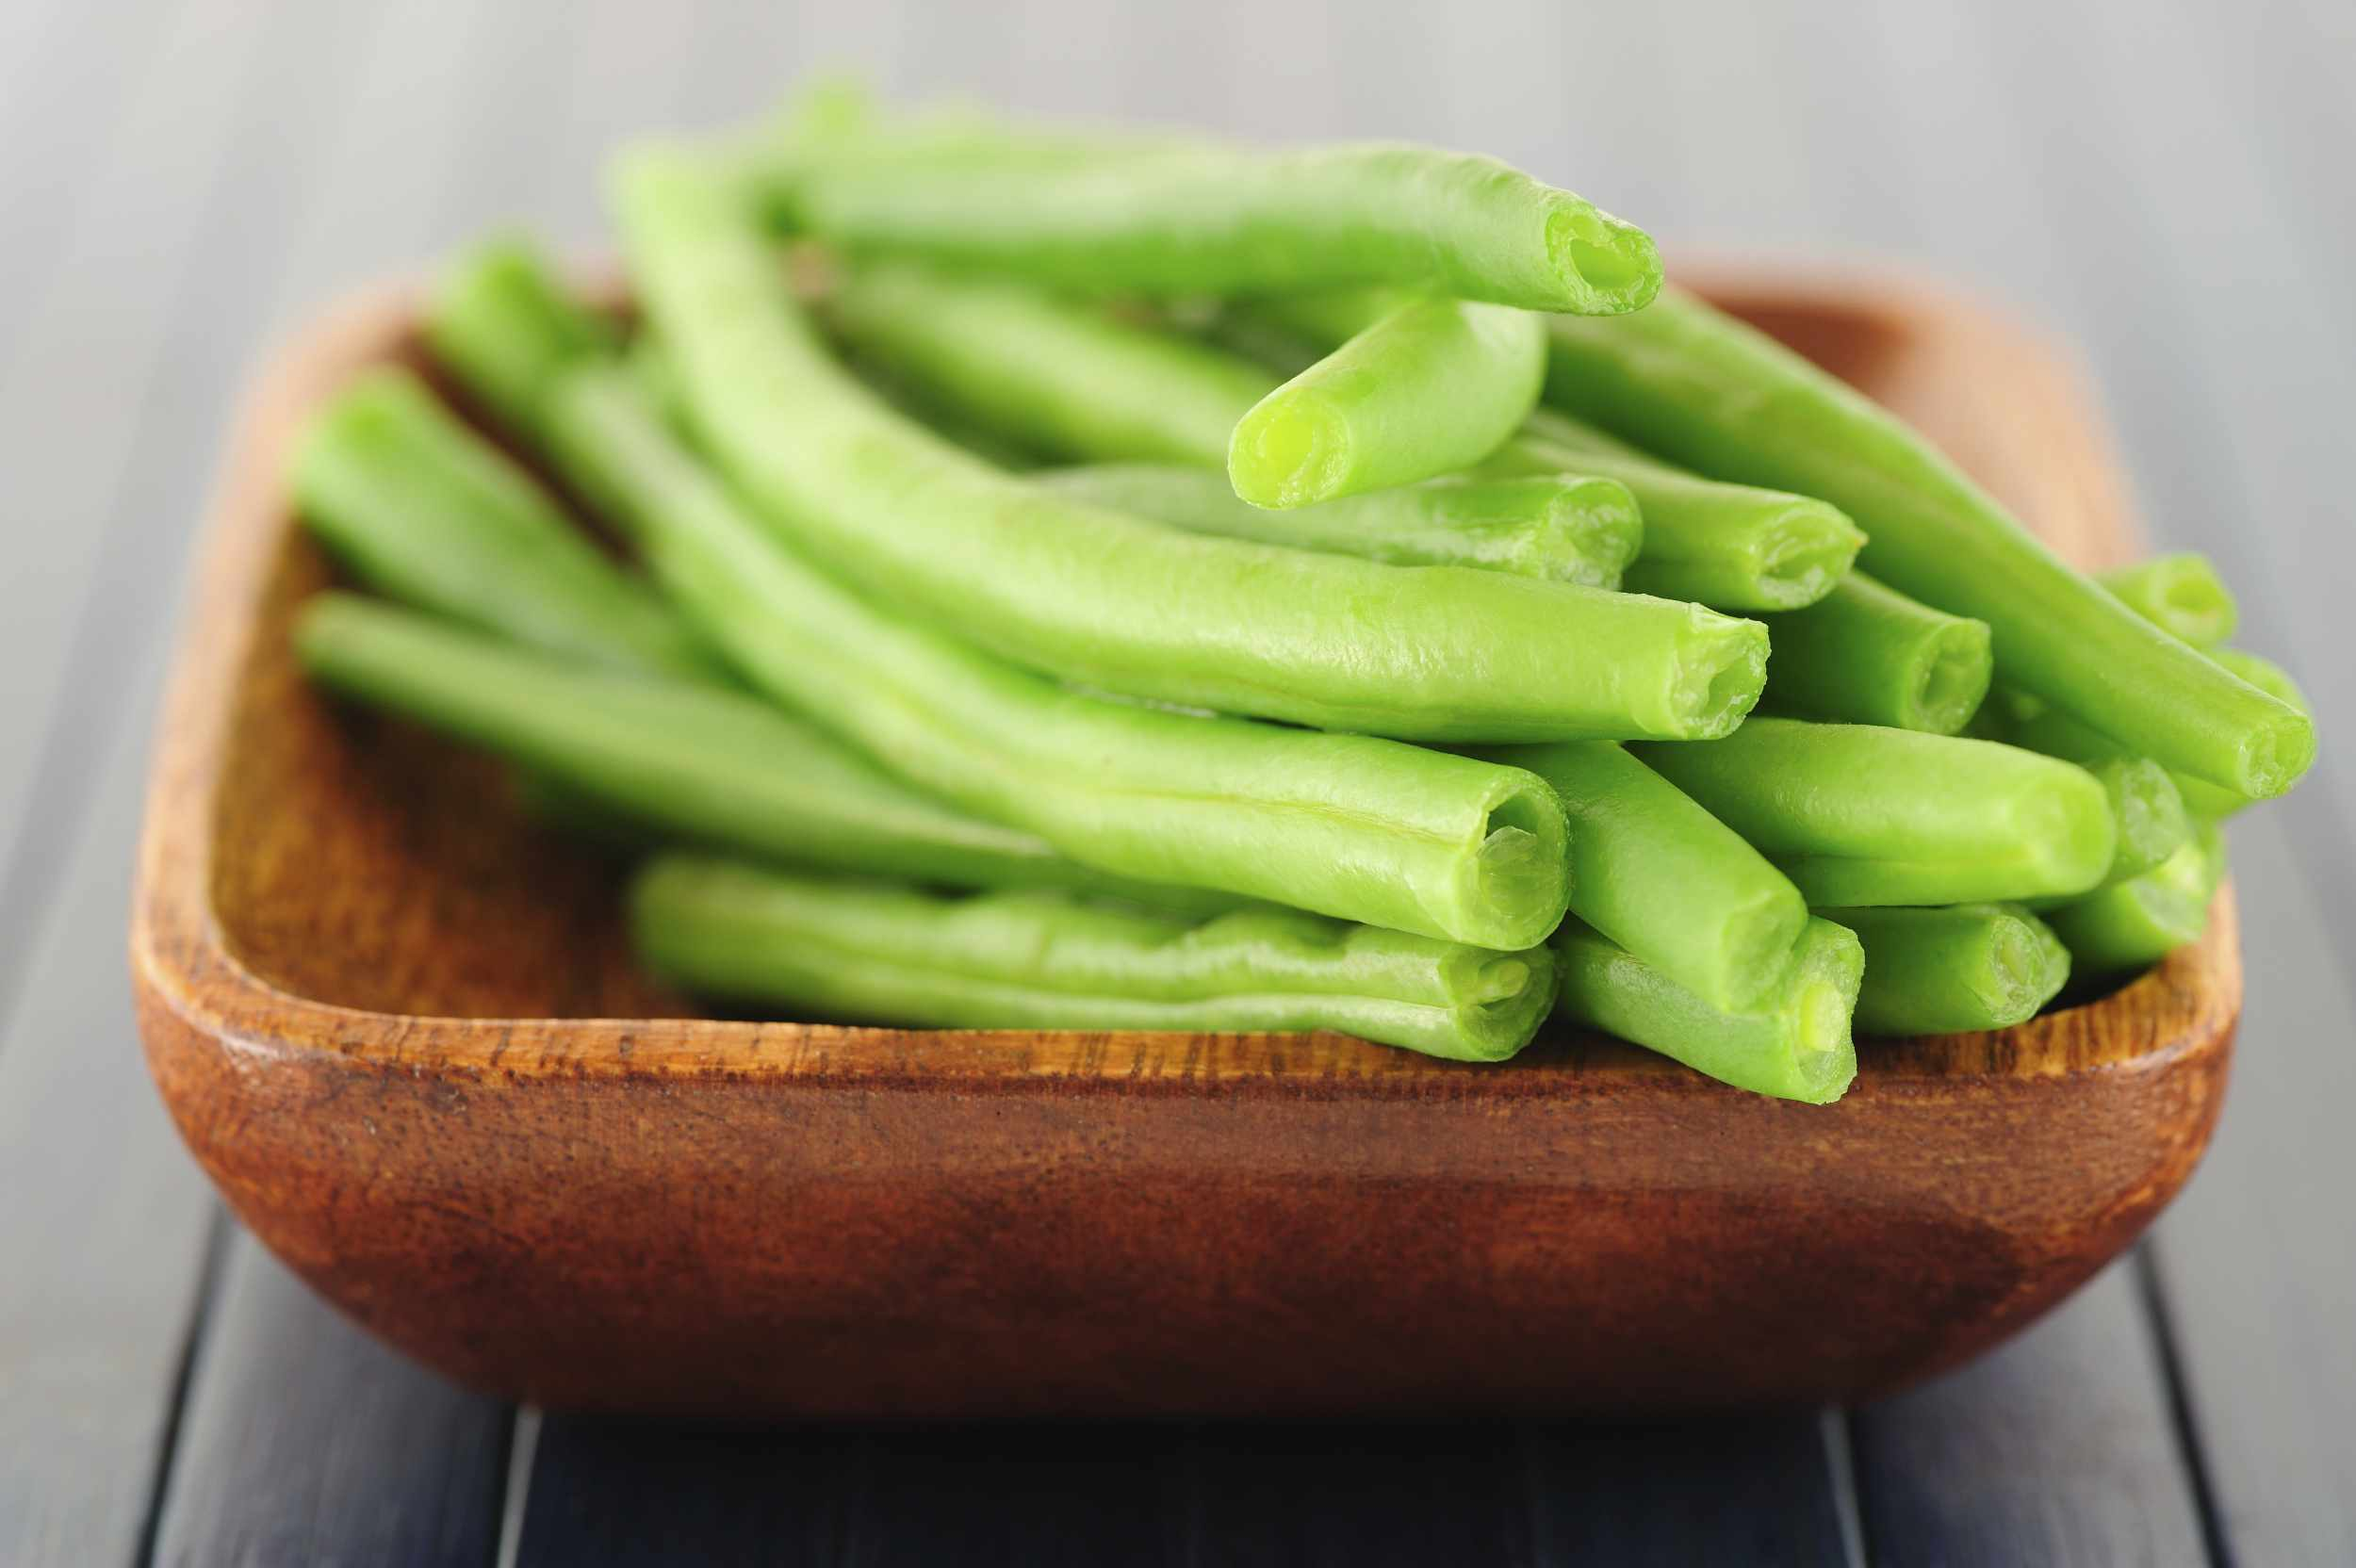 7 Questions and Answers About Green Beans